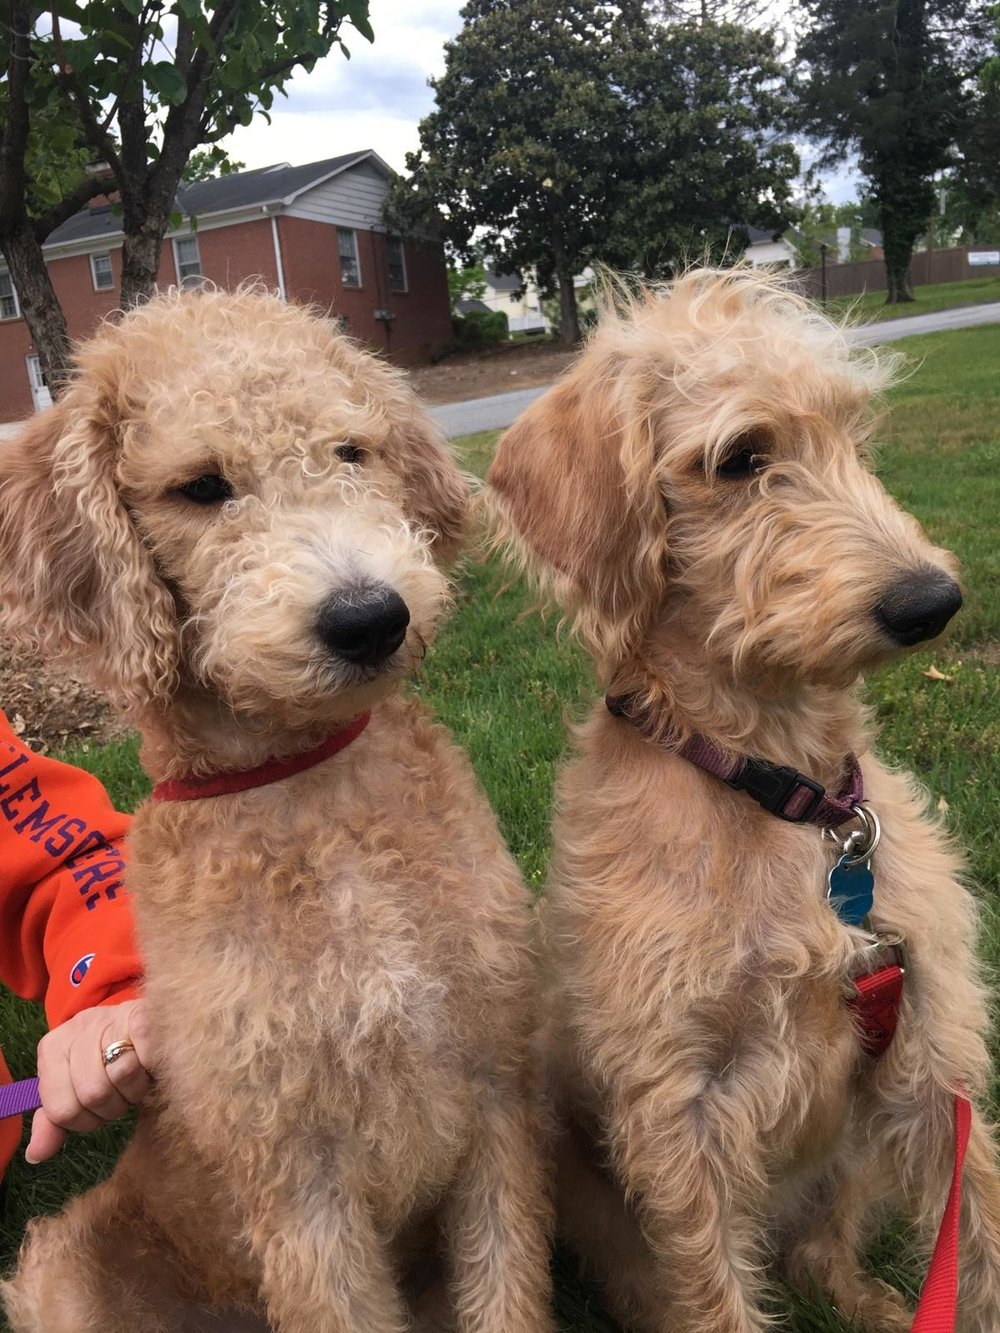 Maisy (Labradoodle mom) is on the right, with her sister, Buffy on the left